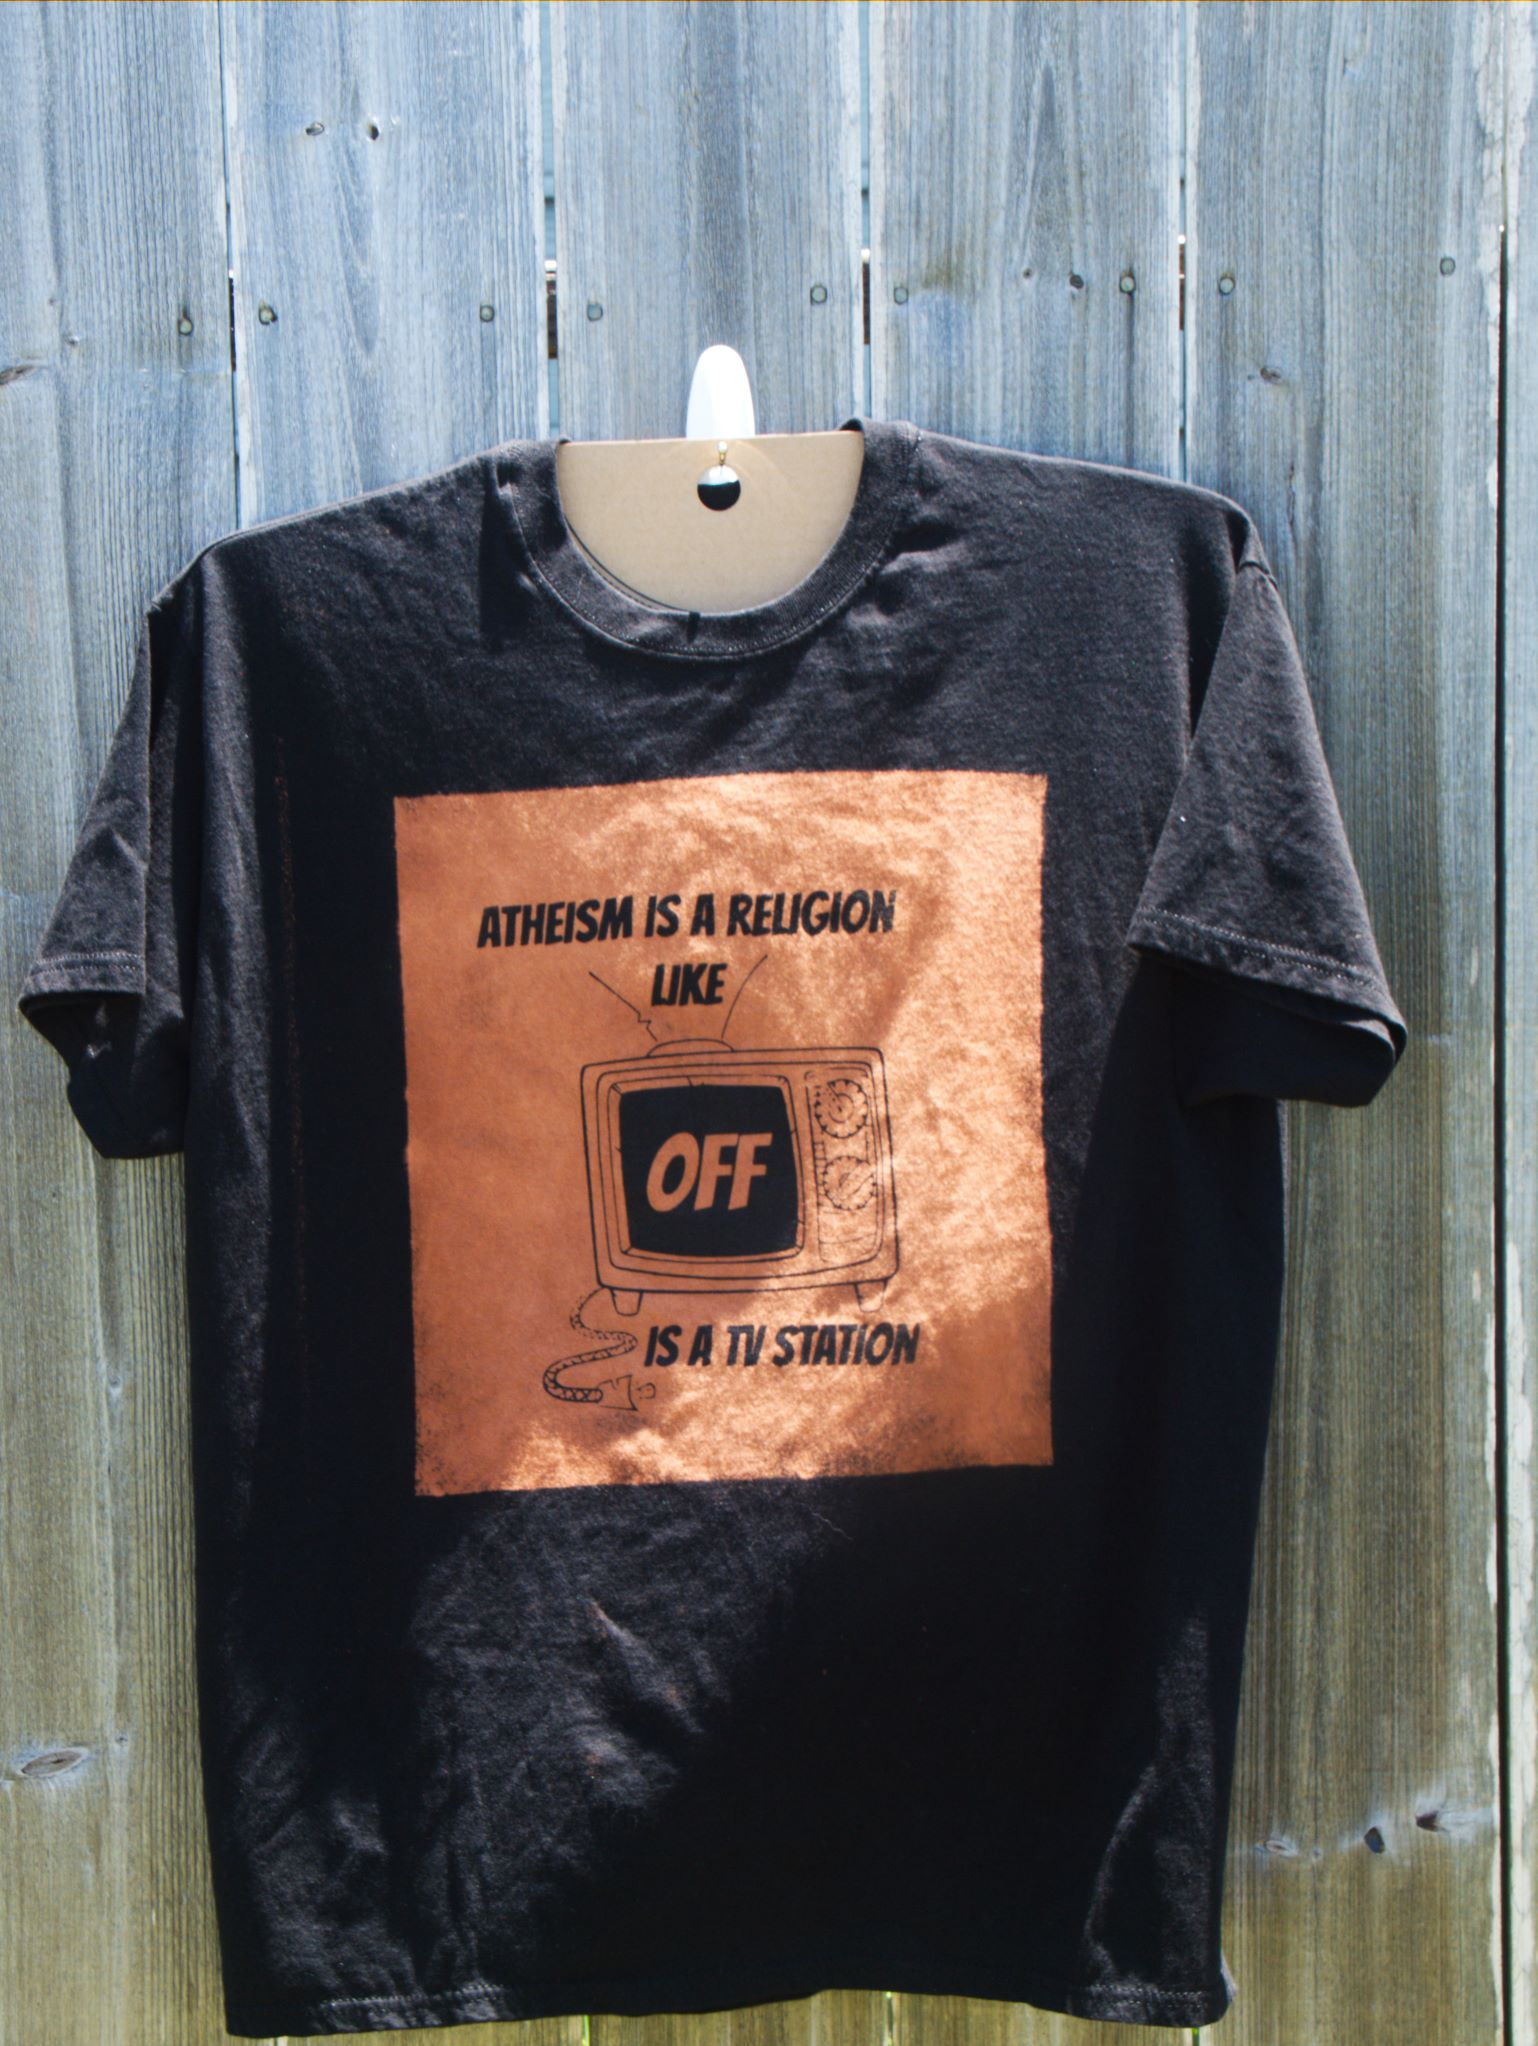 Atheism is a religion like OFF is a TV station discharge ink tee shirt example